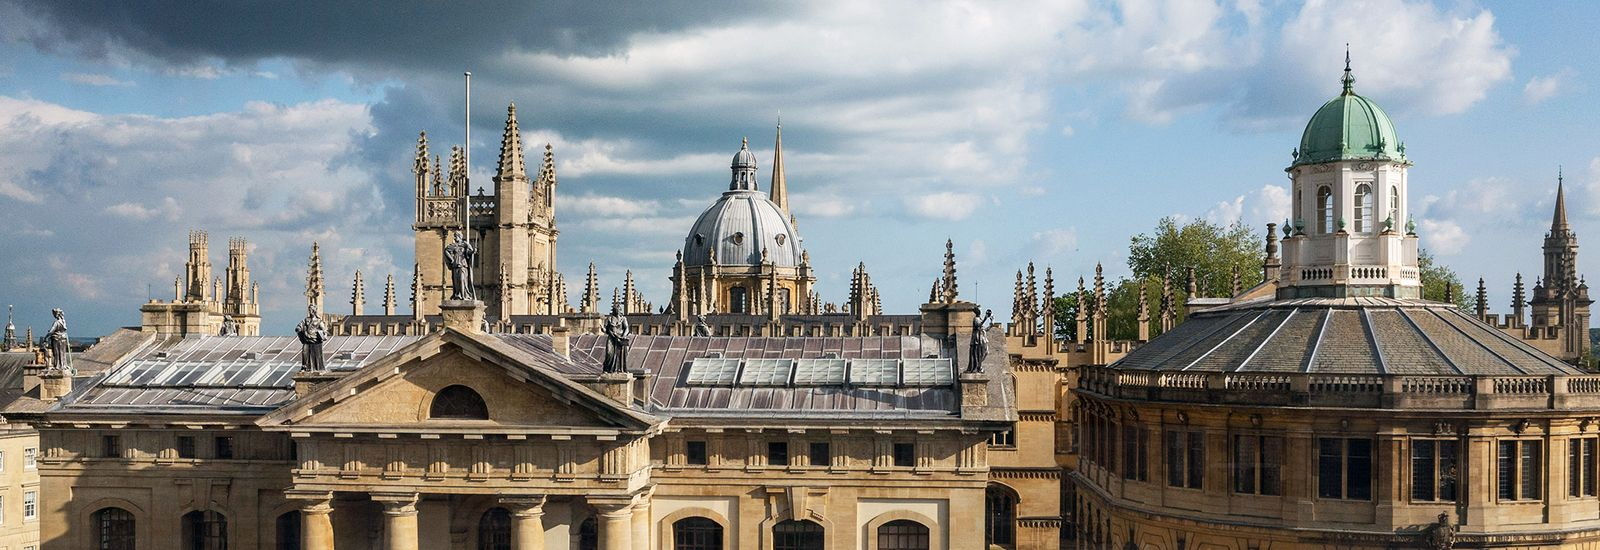 A photo of the Oxford skyline